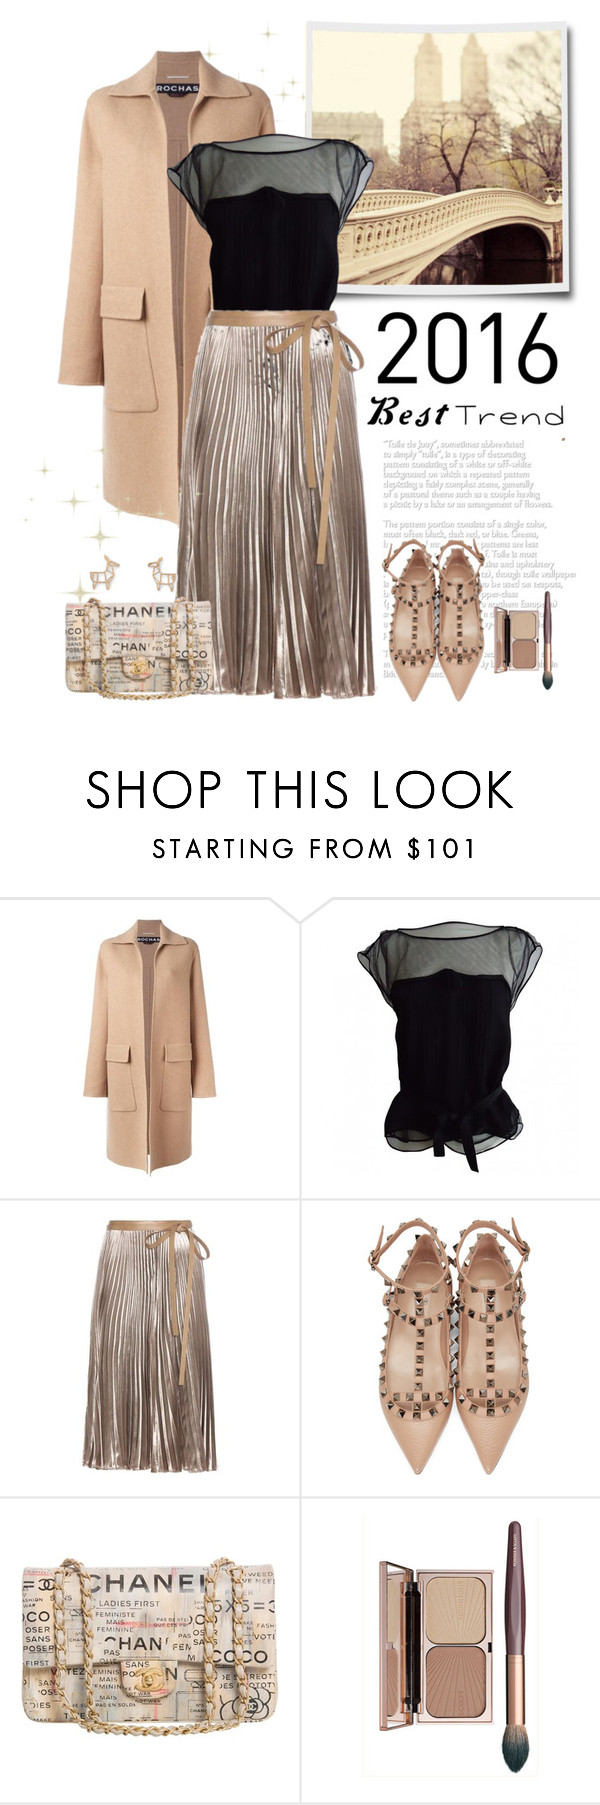 """""""Best Trend of 2016: Pleated Metallic Velvet Skirt"""" by frechelibelle ❤ liked on Polyvore featuring Rochas, Louis Vuitton, Valentino and Chanel"""